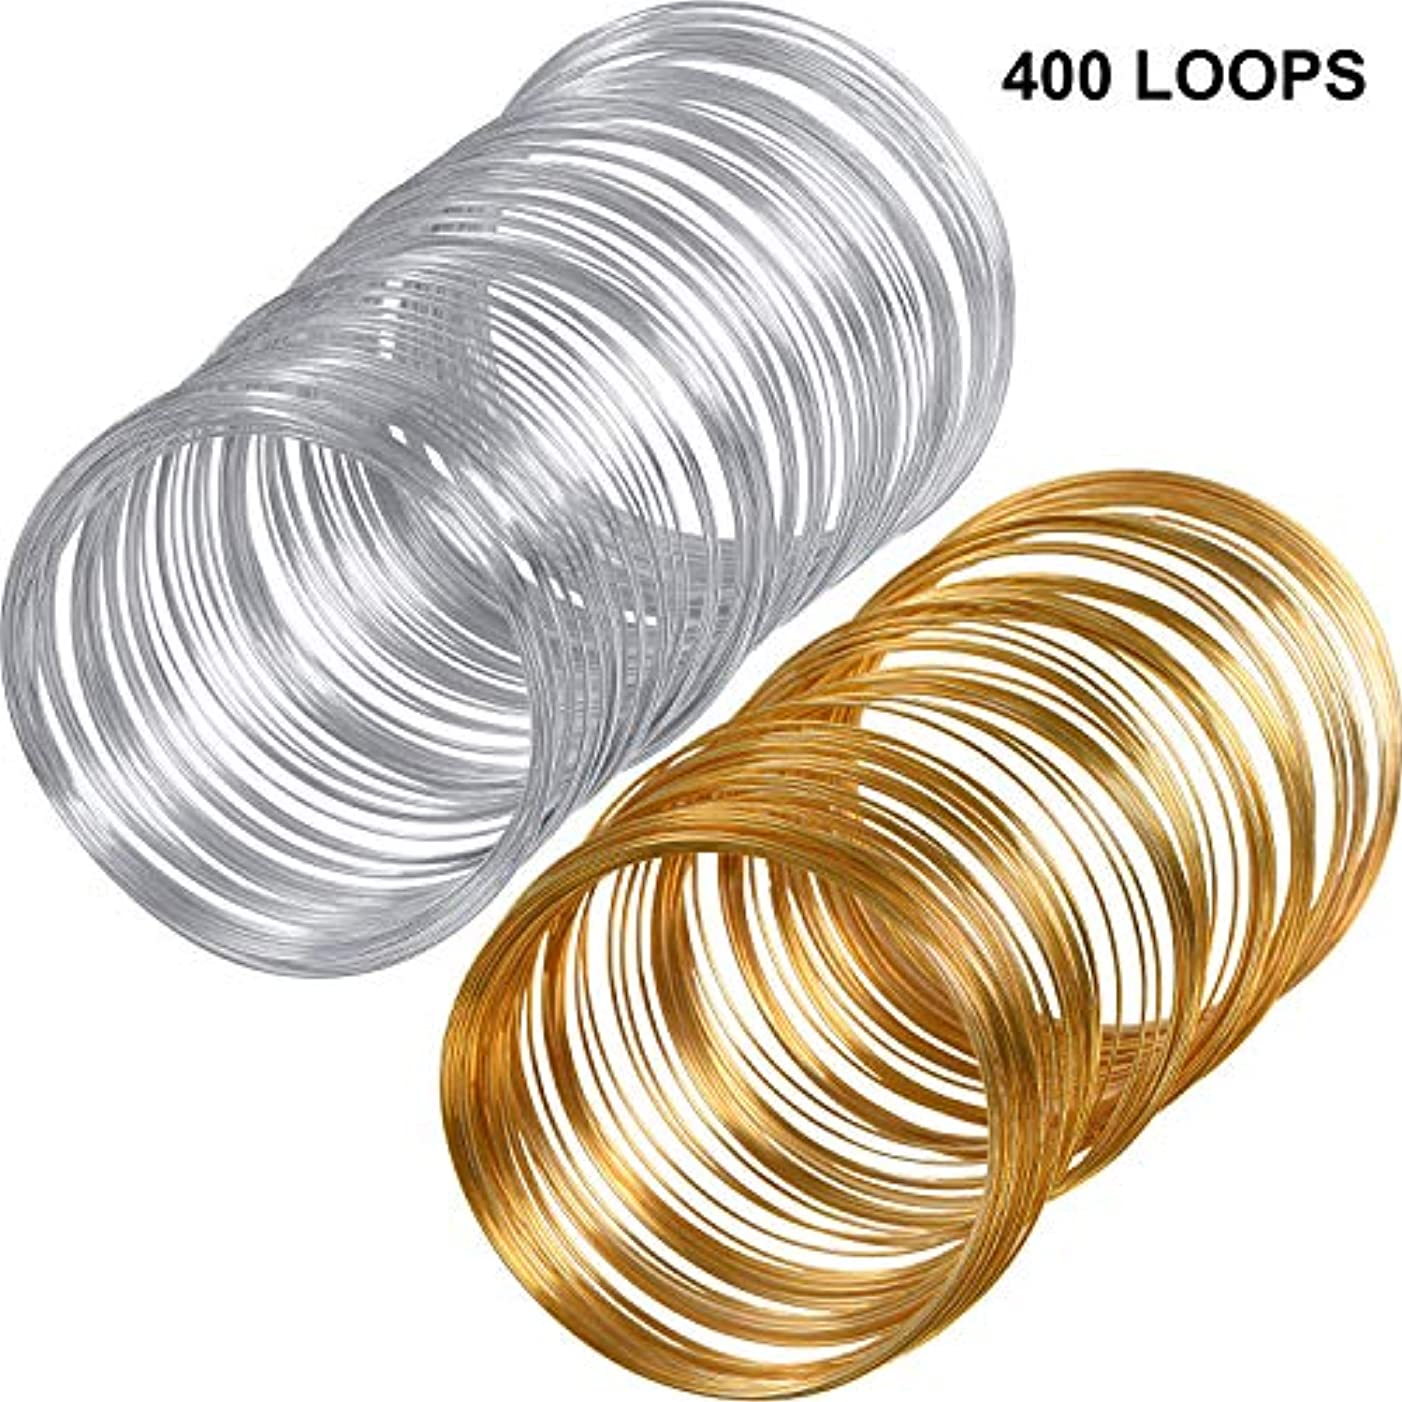 Loop Jewelry Wire Beading Wire Bracelet Memory Wire Cuff Bangle for Wire Wrap Jewelry DIY Making, About 400 Pieces (Gold-Sliver)